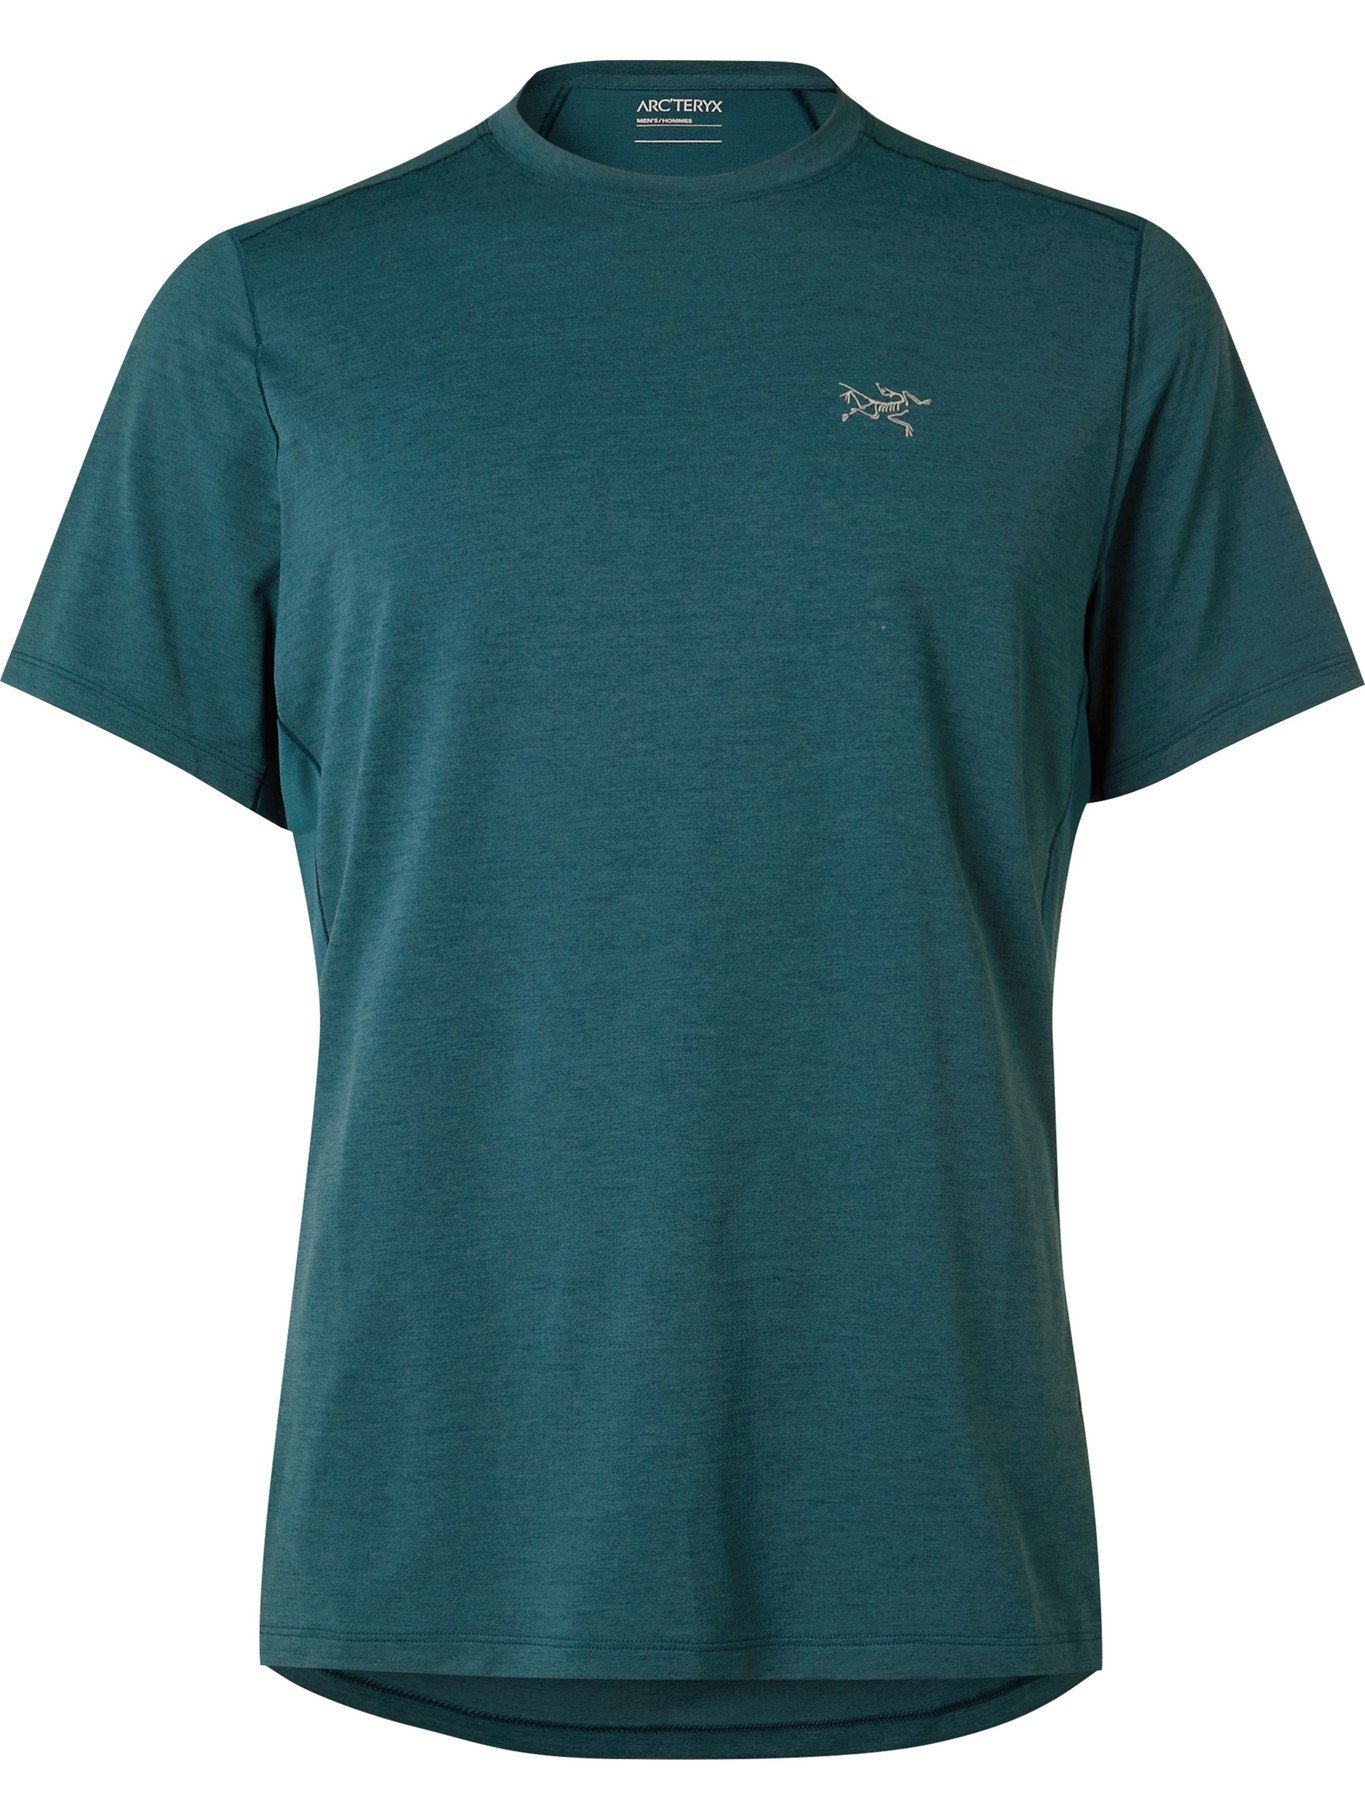 ARC'TERYX - Cormac Comp Panelled Jersey and Mesh T-Shirt - Blue